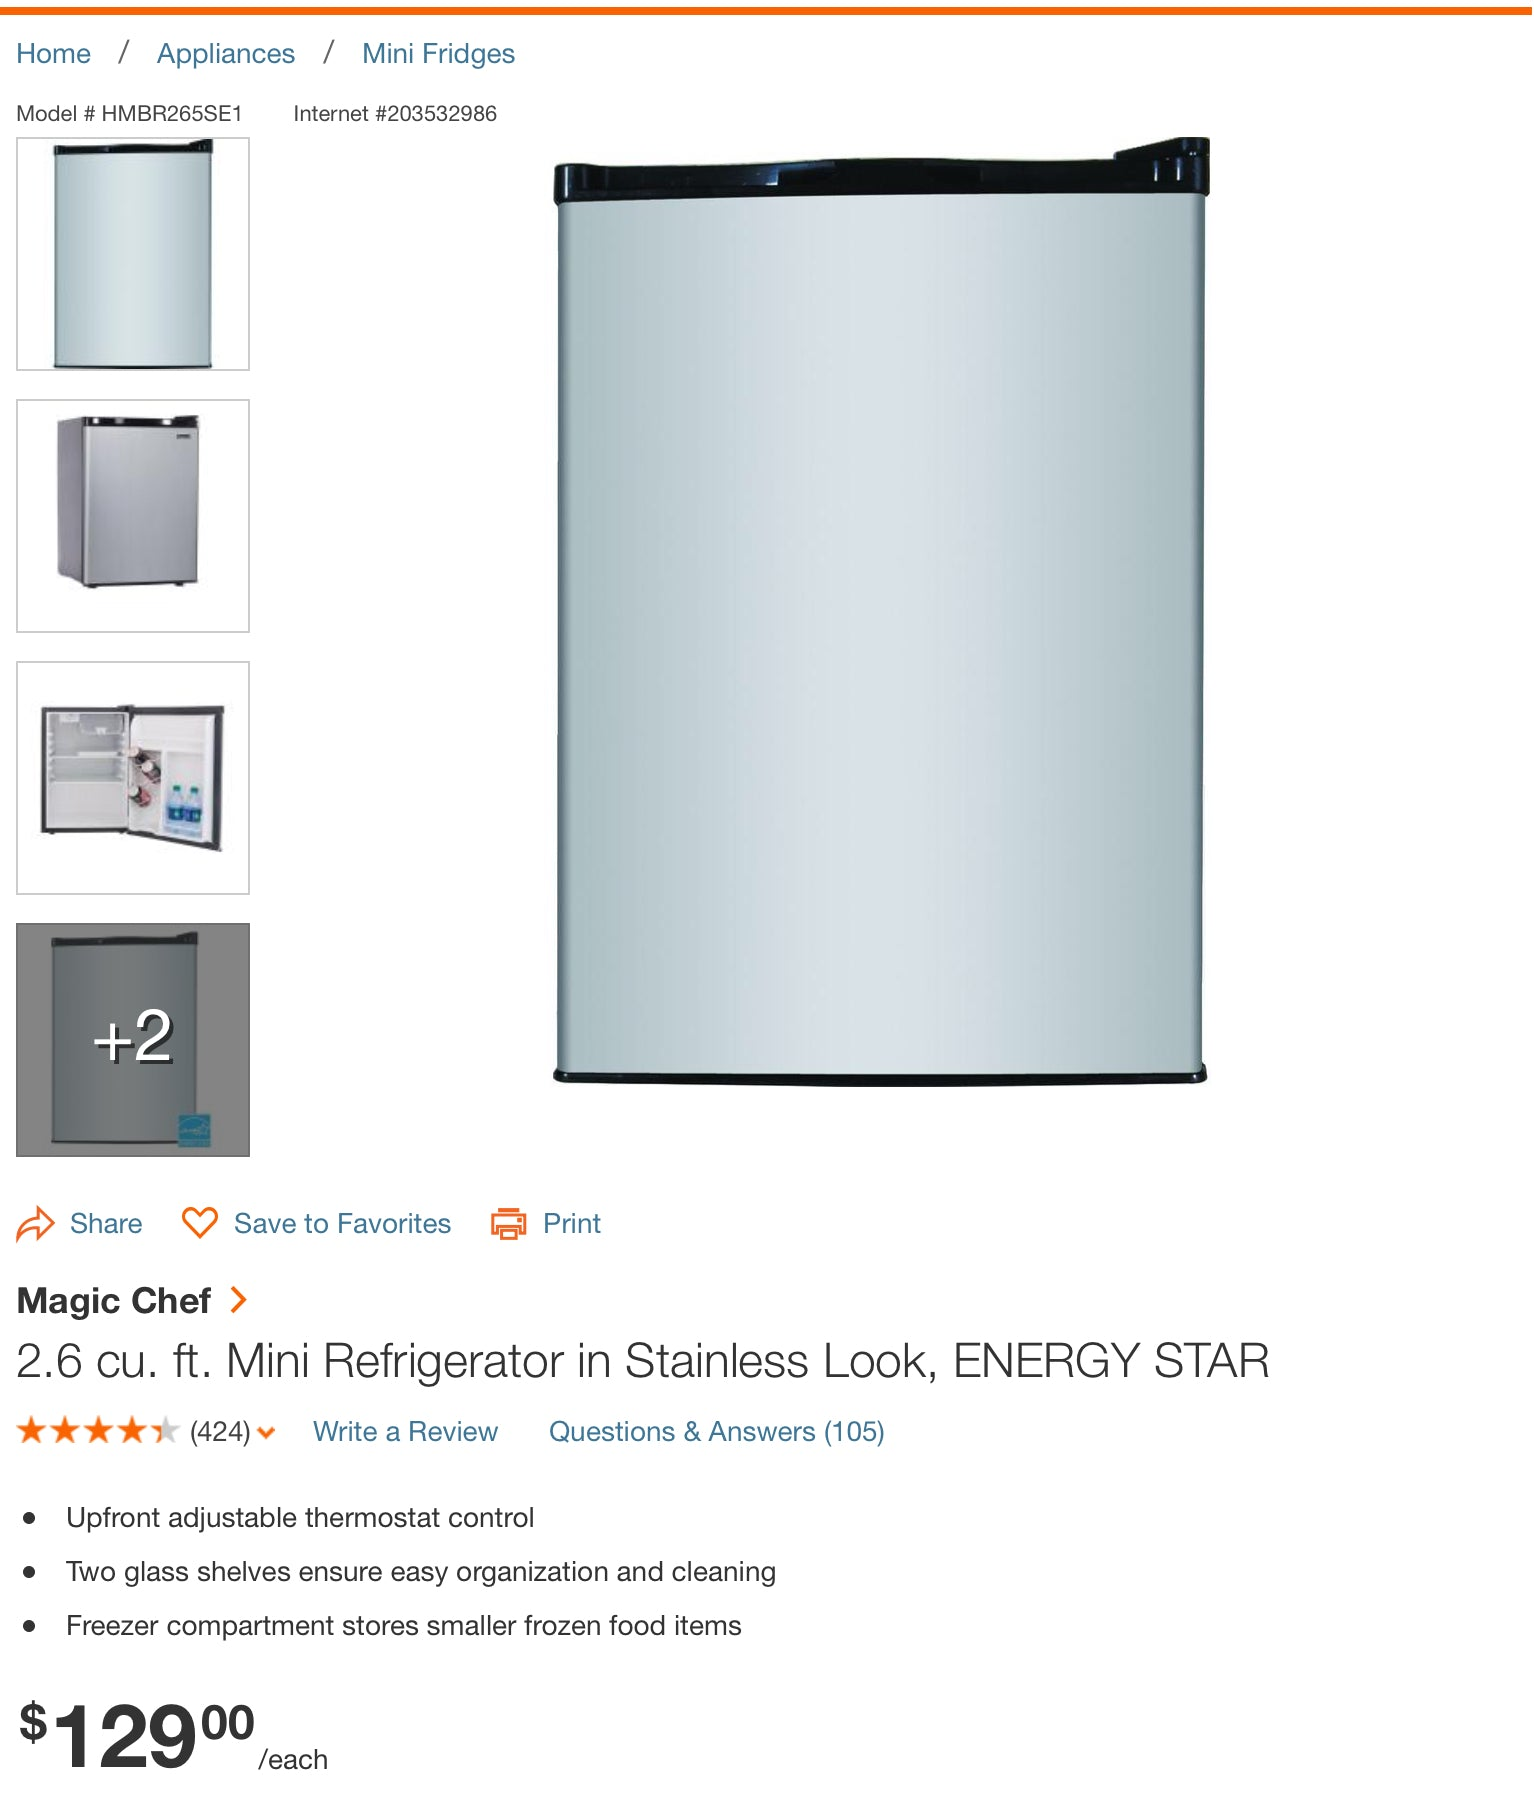 Magic Chef 2.6 cu ft ENERGY STAR Mini Refrigerator in Stainless Look